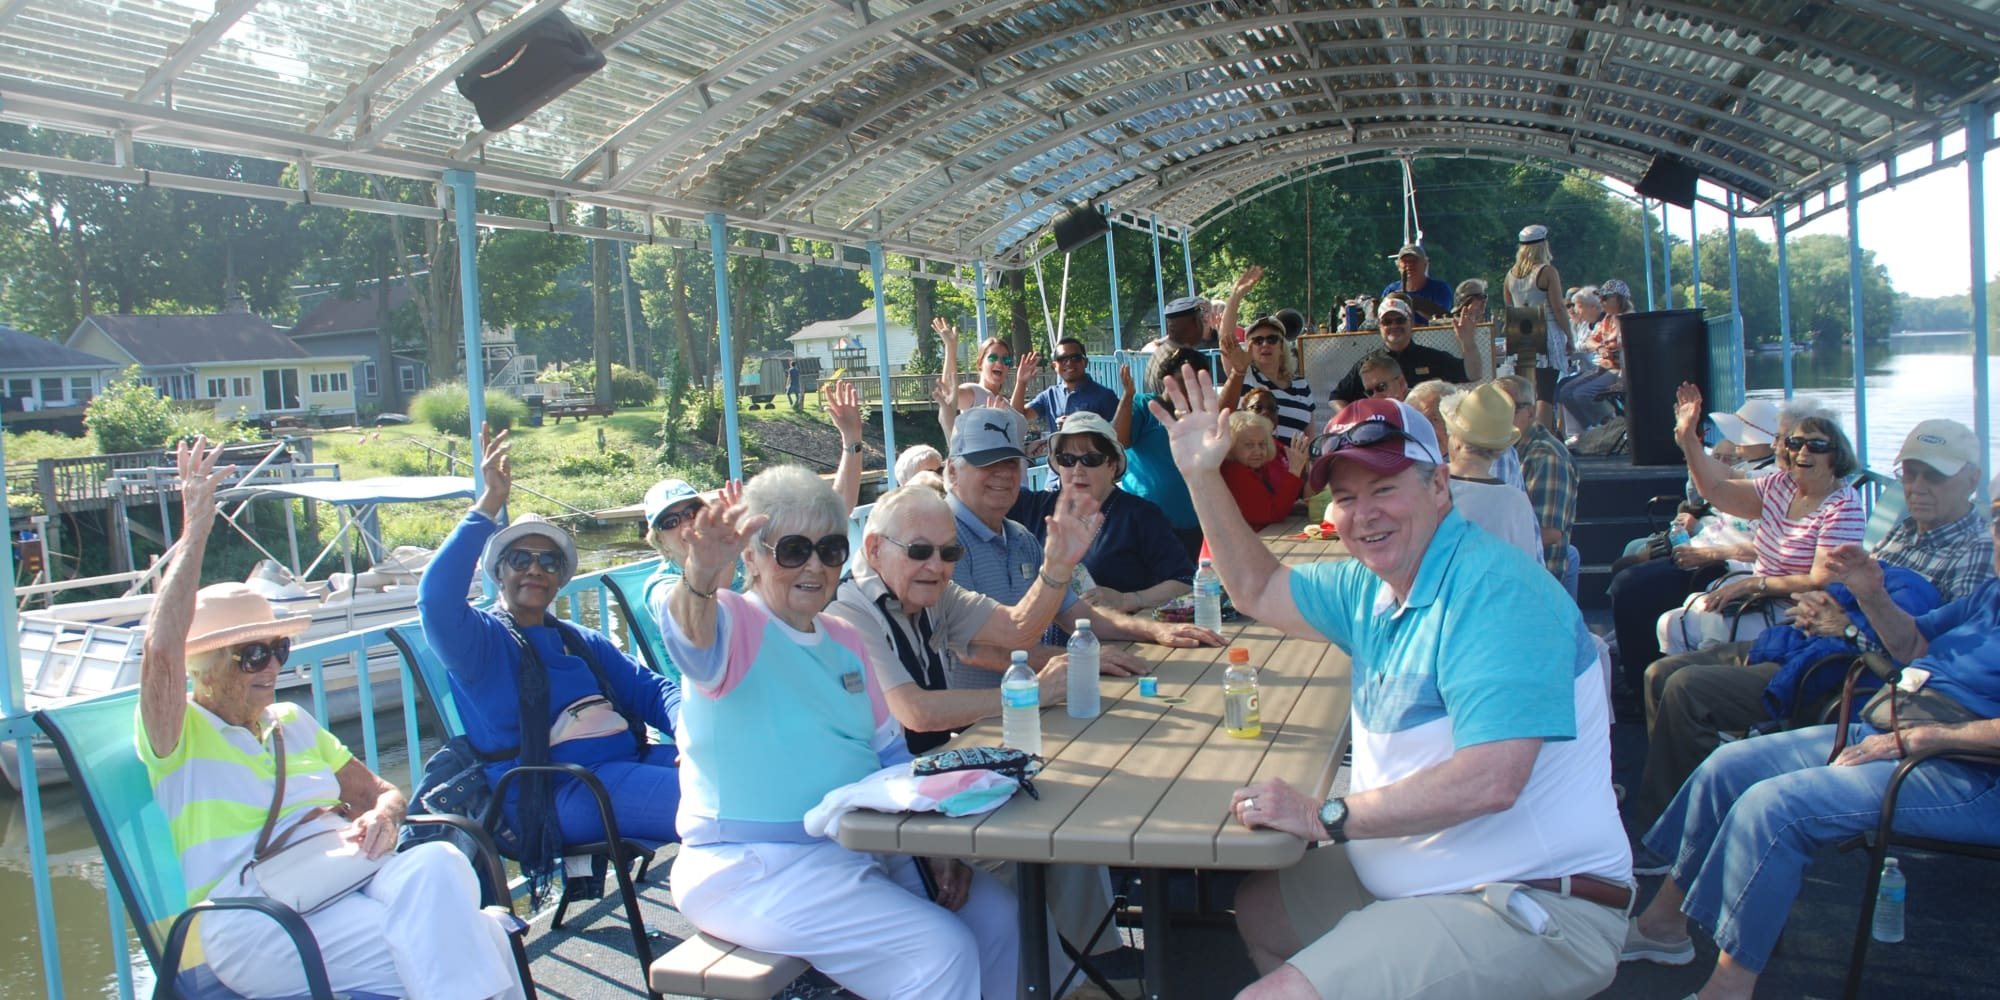 A group of residents from Heatherwood Gracious Retirement Living in Tewksbury, Massachusetts on a boat